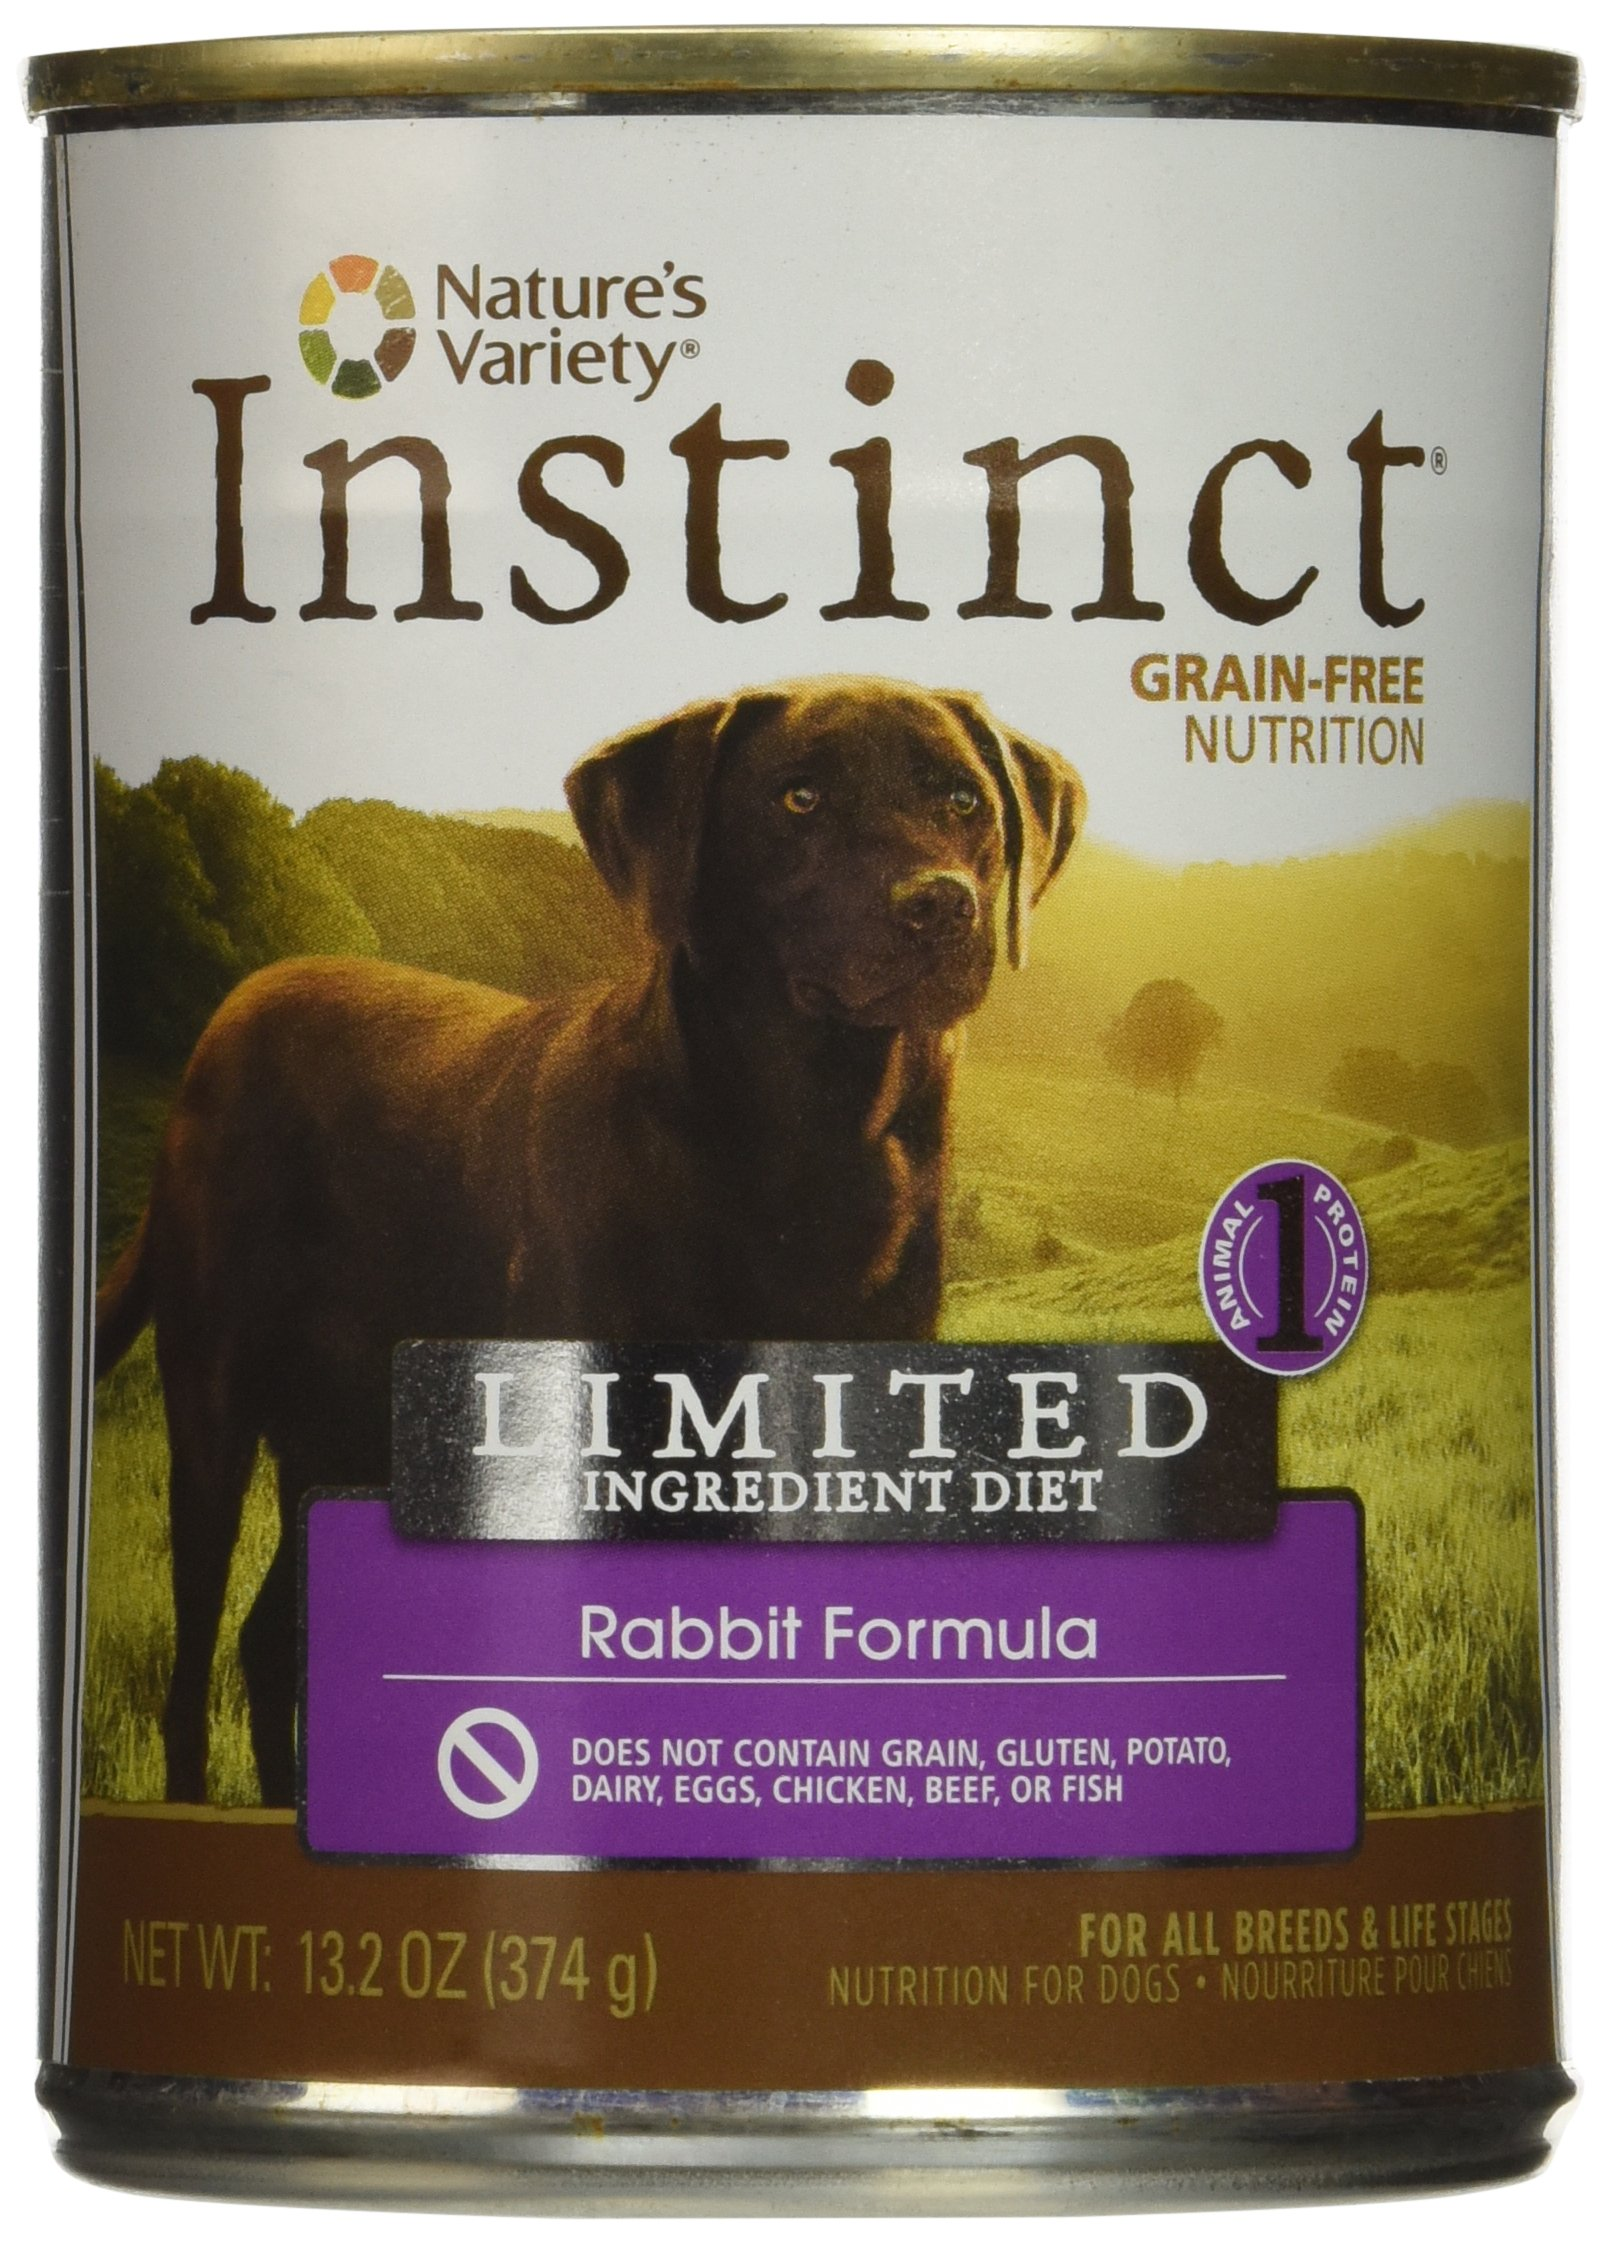 Nature'S Variety Instinct Limited Ingredient Diet Grain Free Rabbit Formula Natural Wet Canned Dog Food By, 13.2 Oz. Cans (Case Of 12) by Nature's Variety